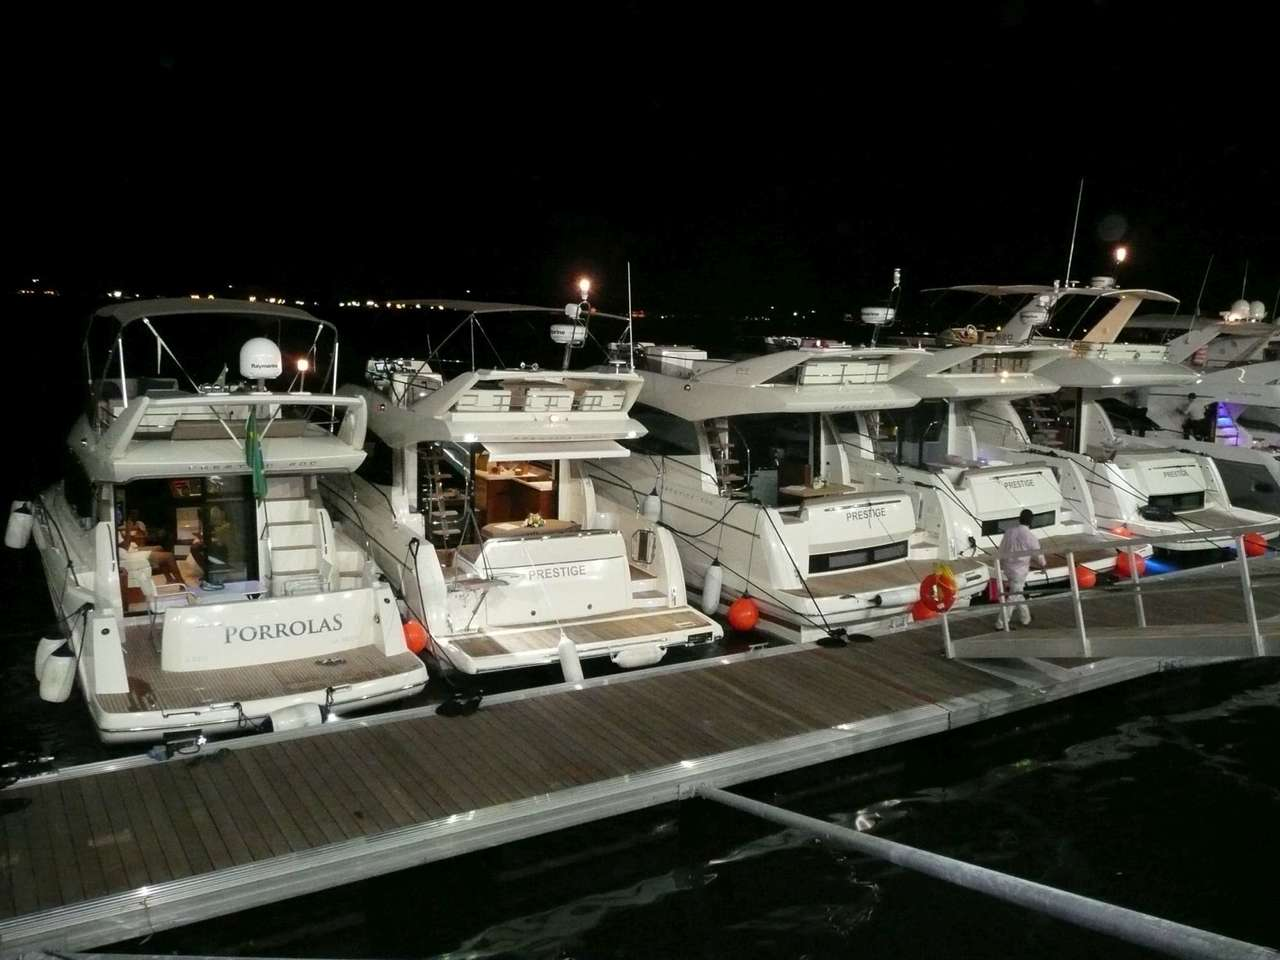 Prestige, one of the top brands in the luxury yacht world in Brazil 3